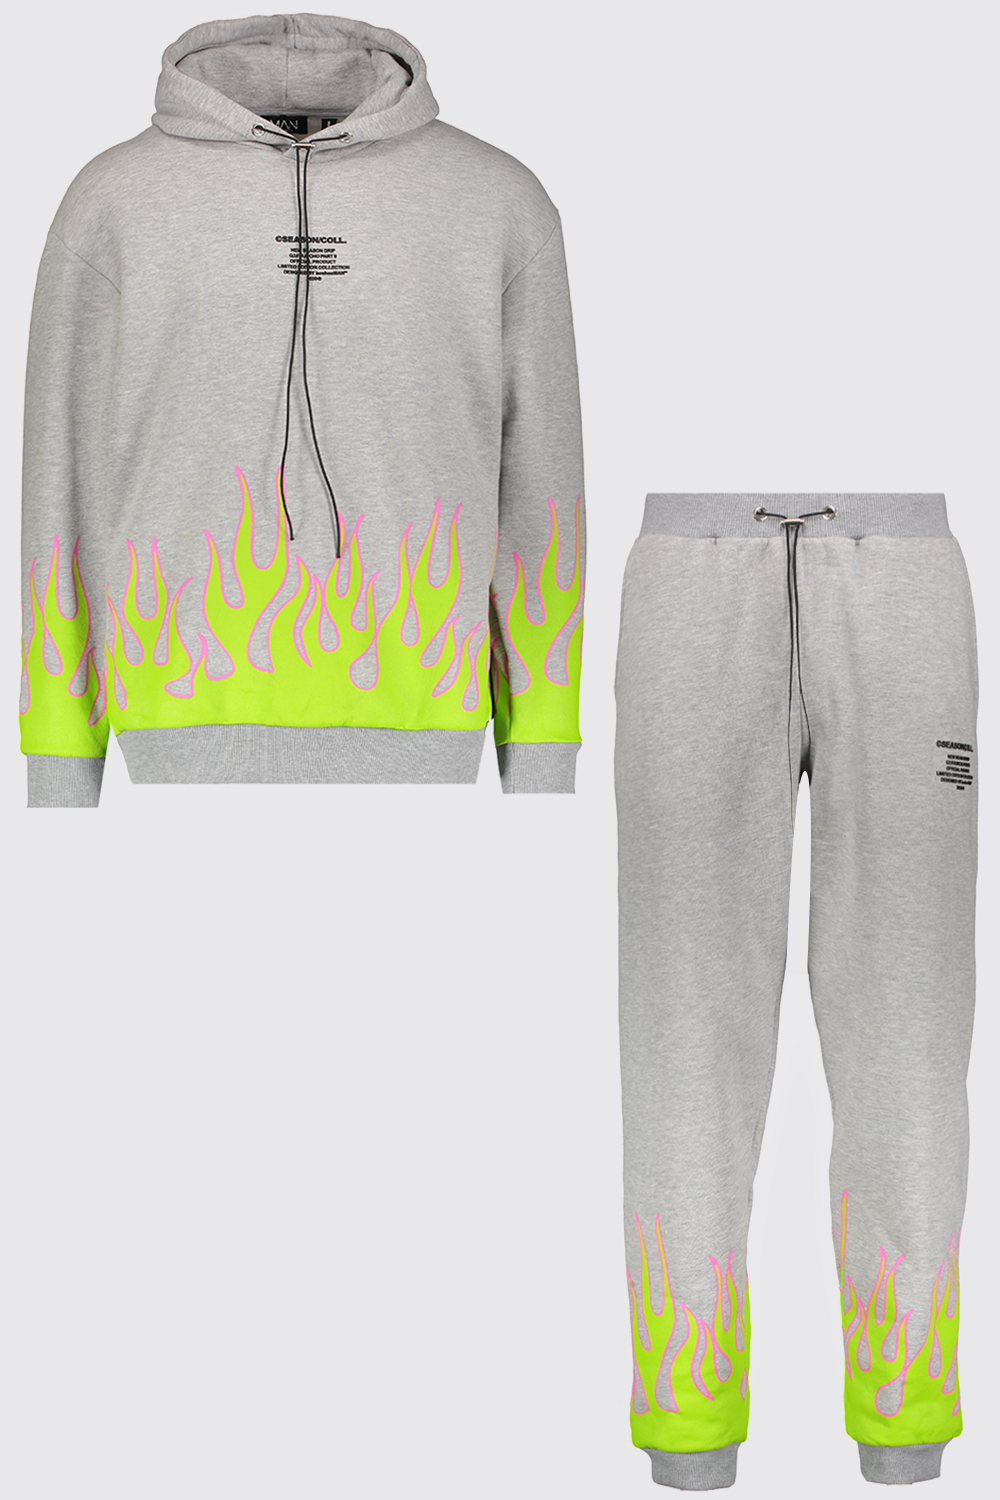 mzz23403_grey_marl_xl_2